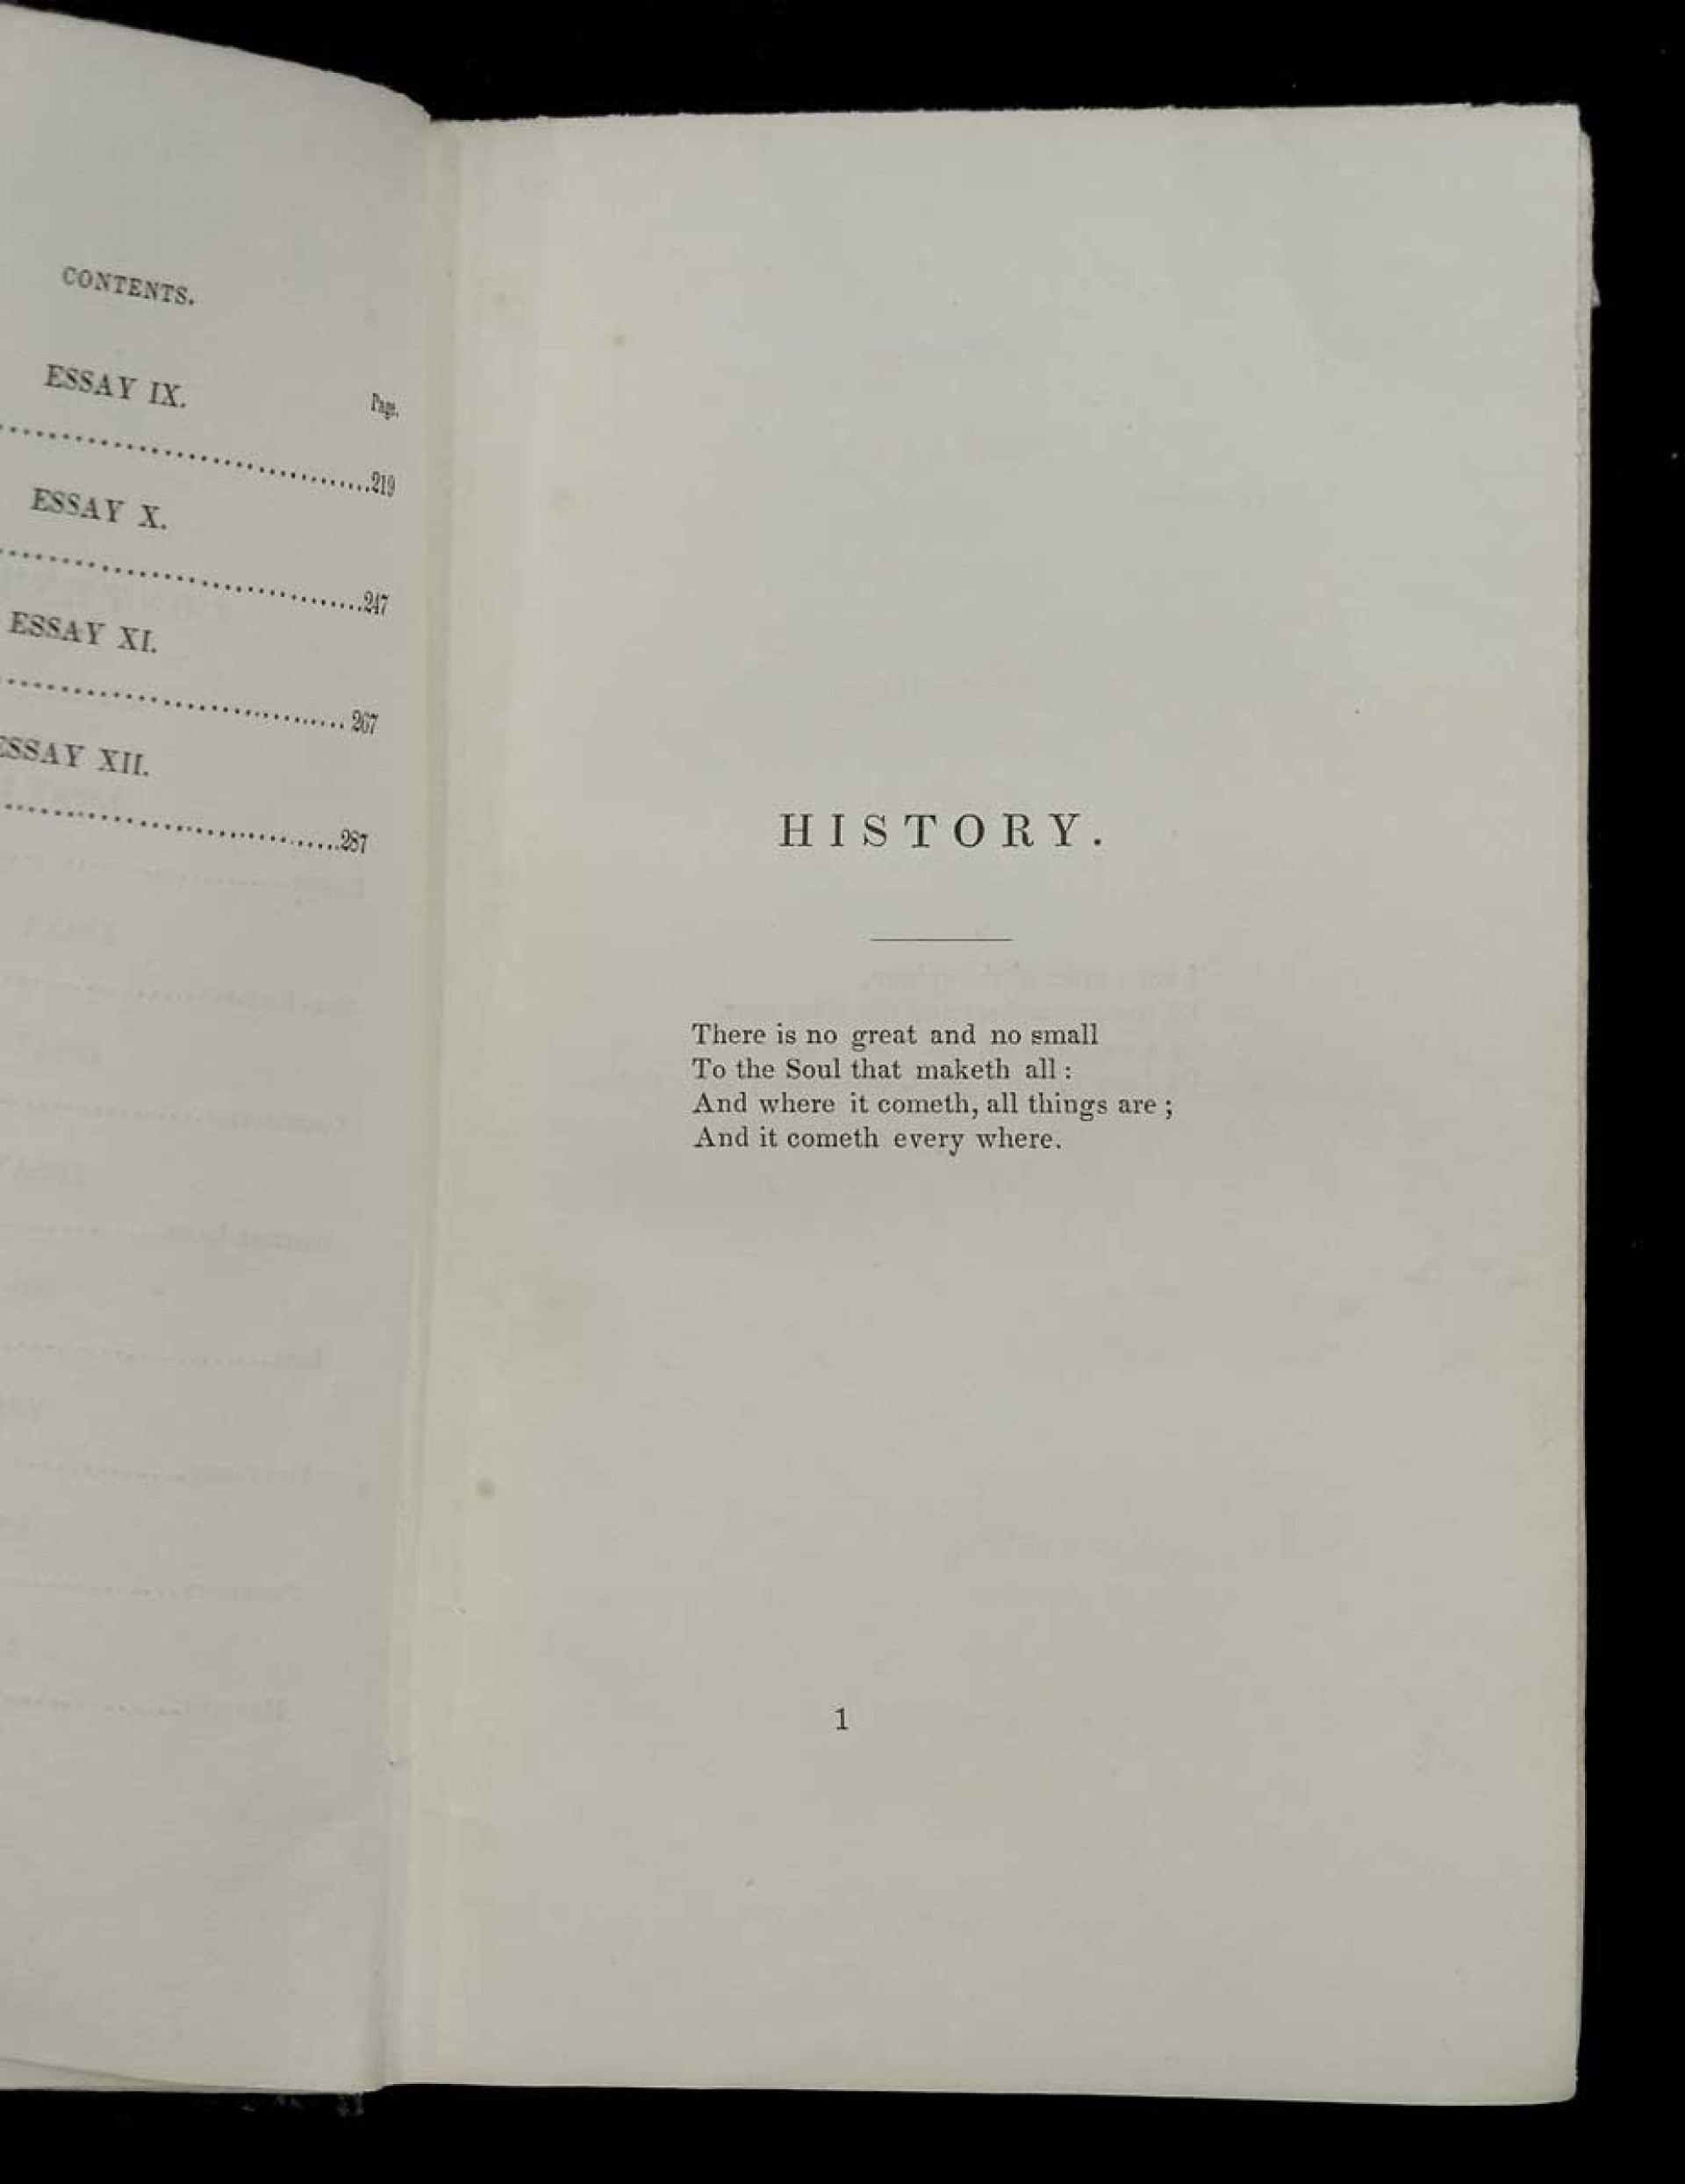 018 Essay Example 4818emerson Wl Emerson Dreaded Essays Self Reliance And Other Second Series Nature 1920